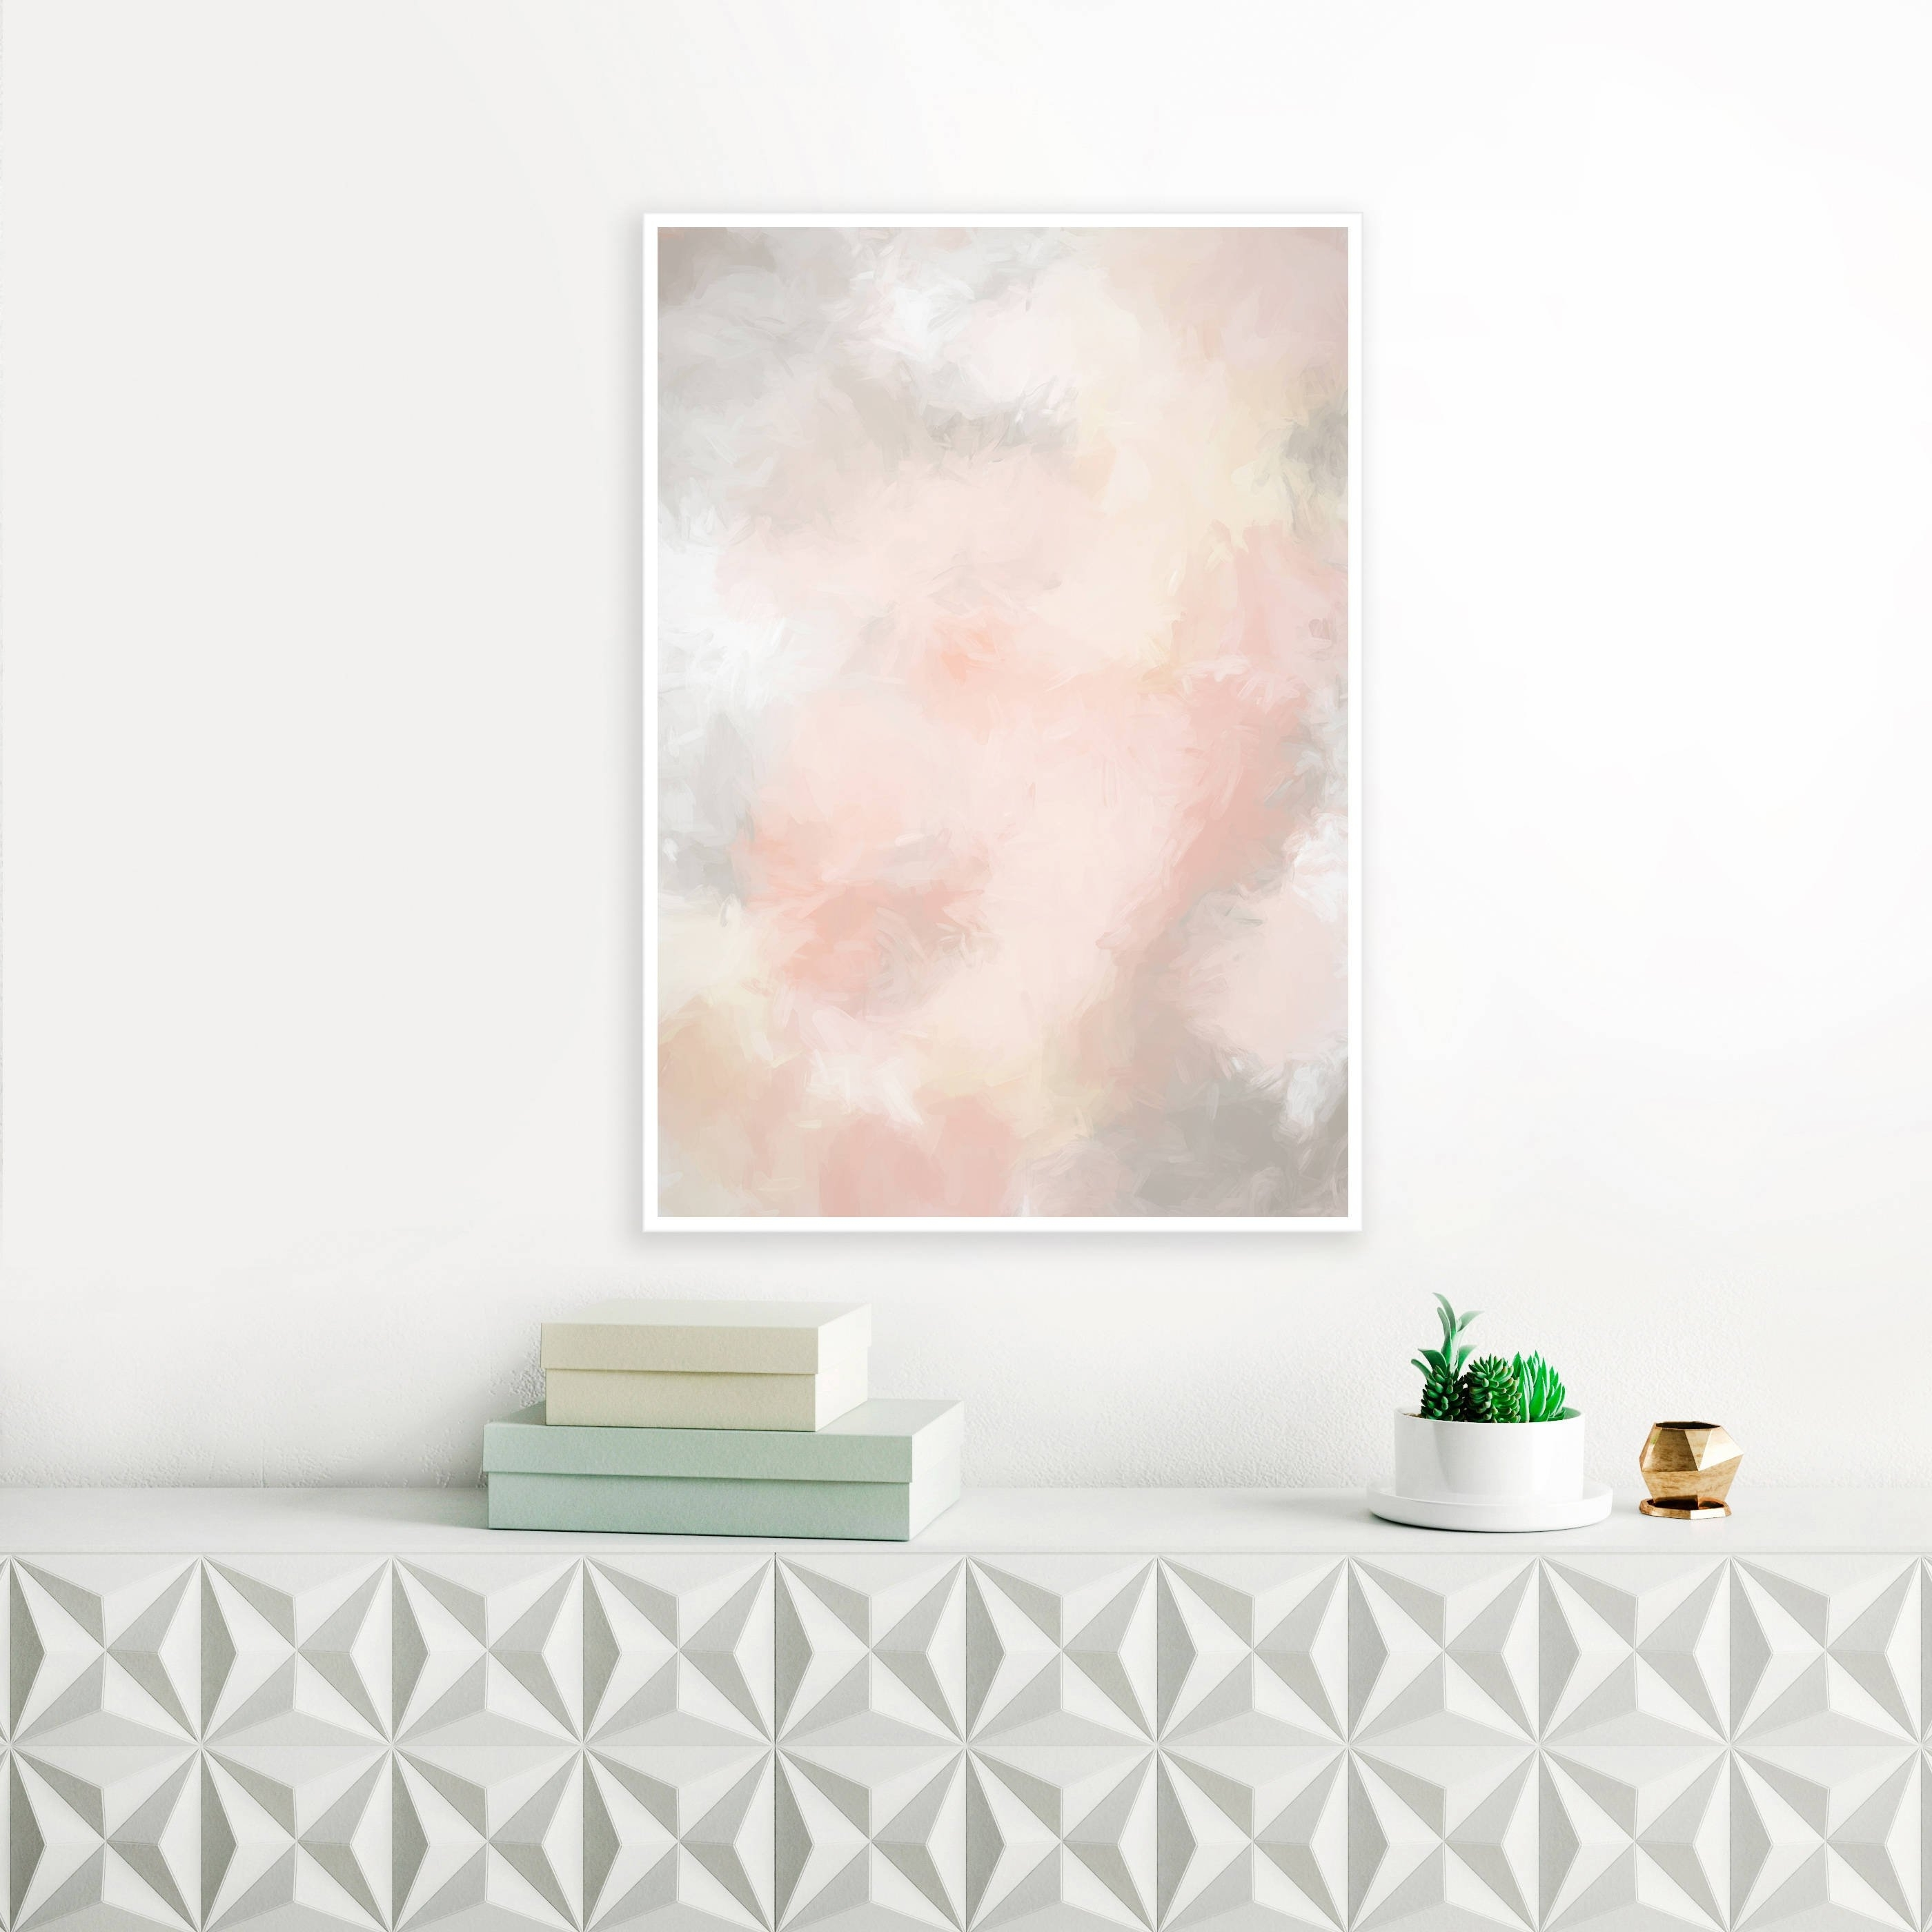 Blush Pink And Grey Painting, Pink Abstract Art, Pink Wall Art, Pale Throughout Latest Pink Wall Art (View 4 of 20)